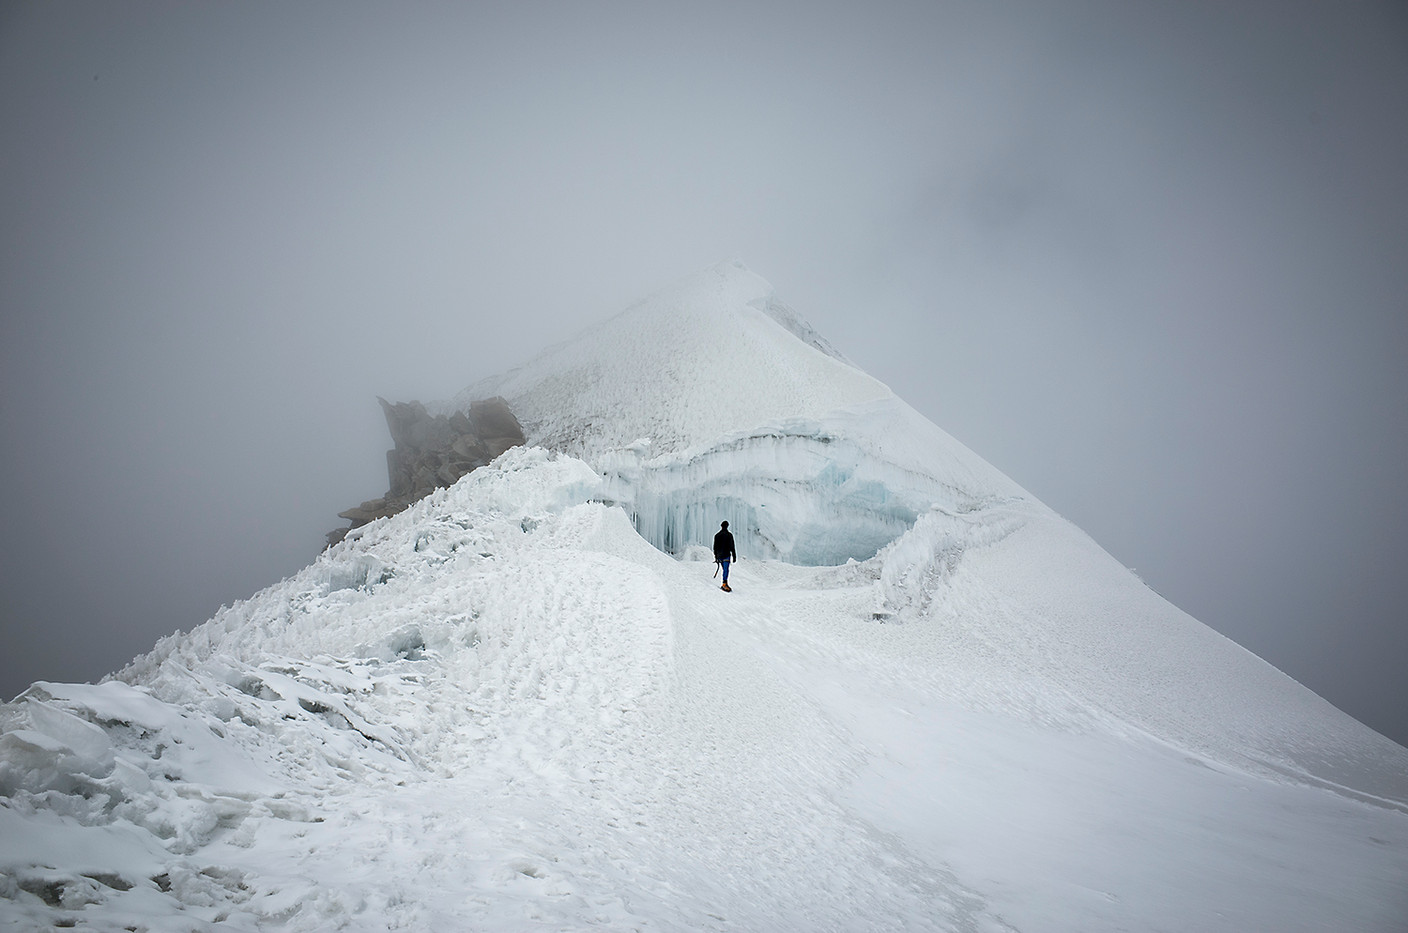 A climber stares into the gaping maw of a minor peak before ascending.